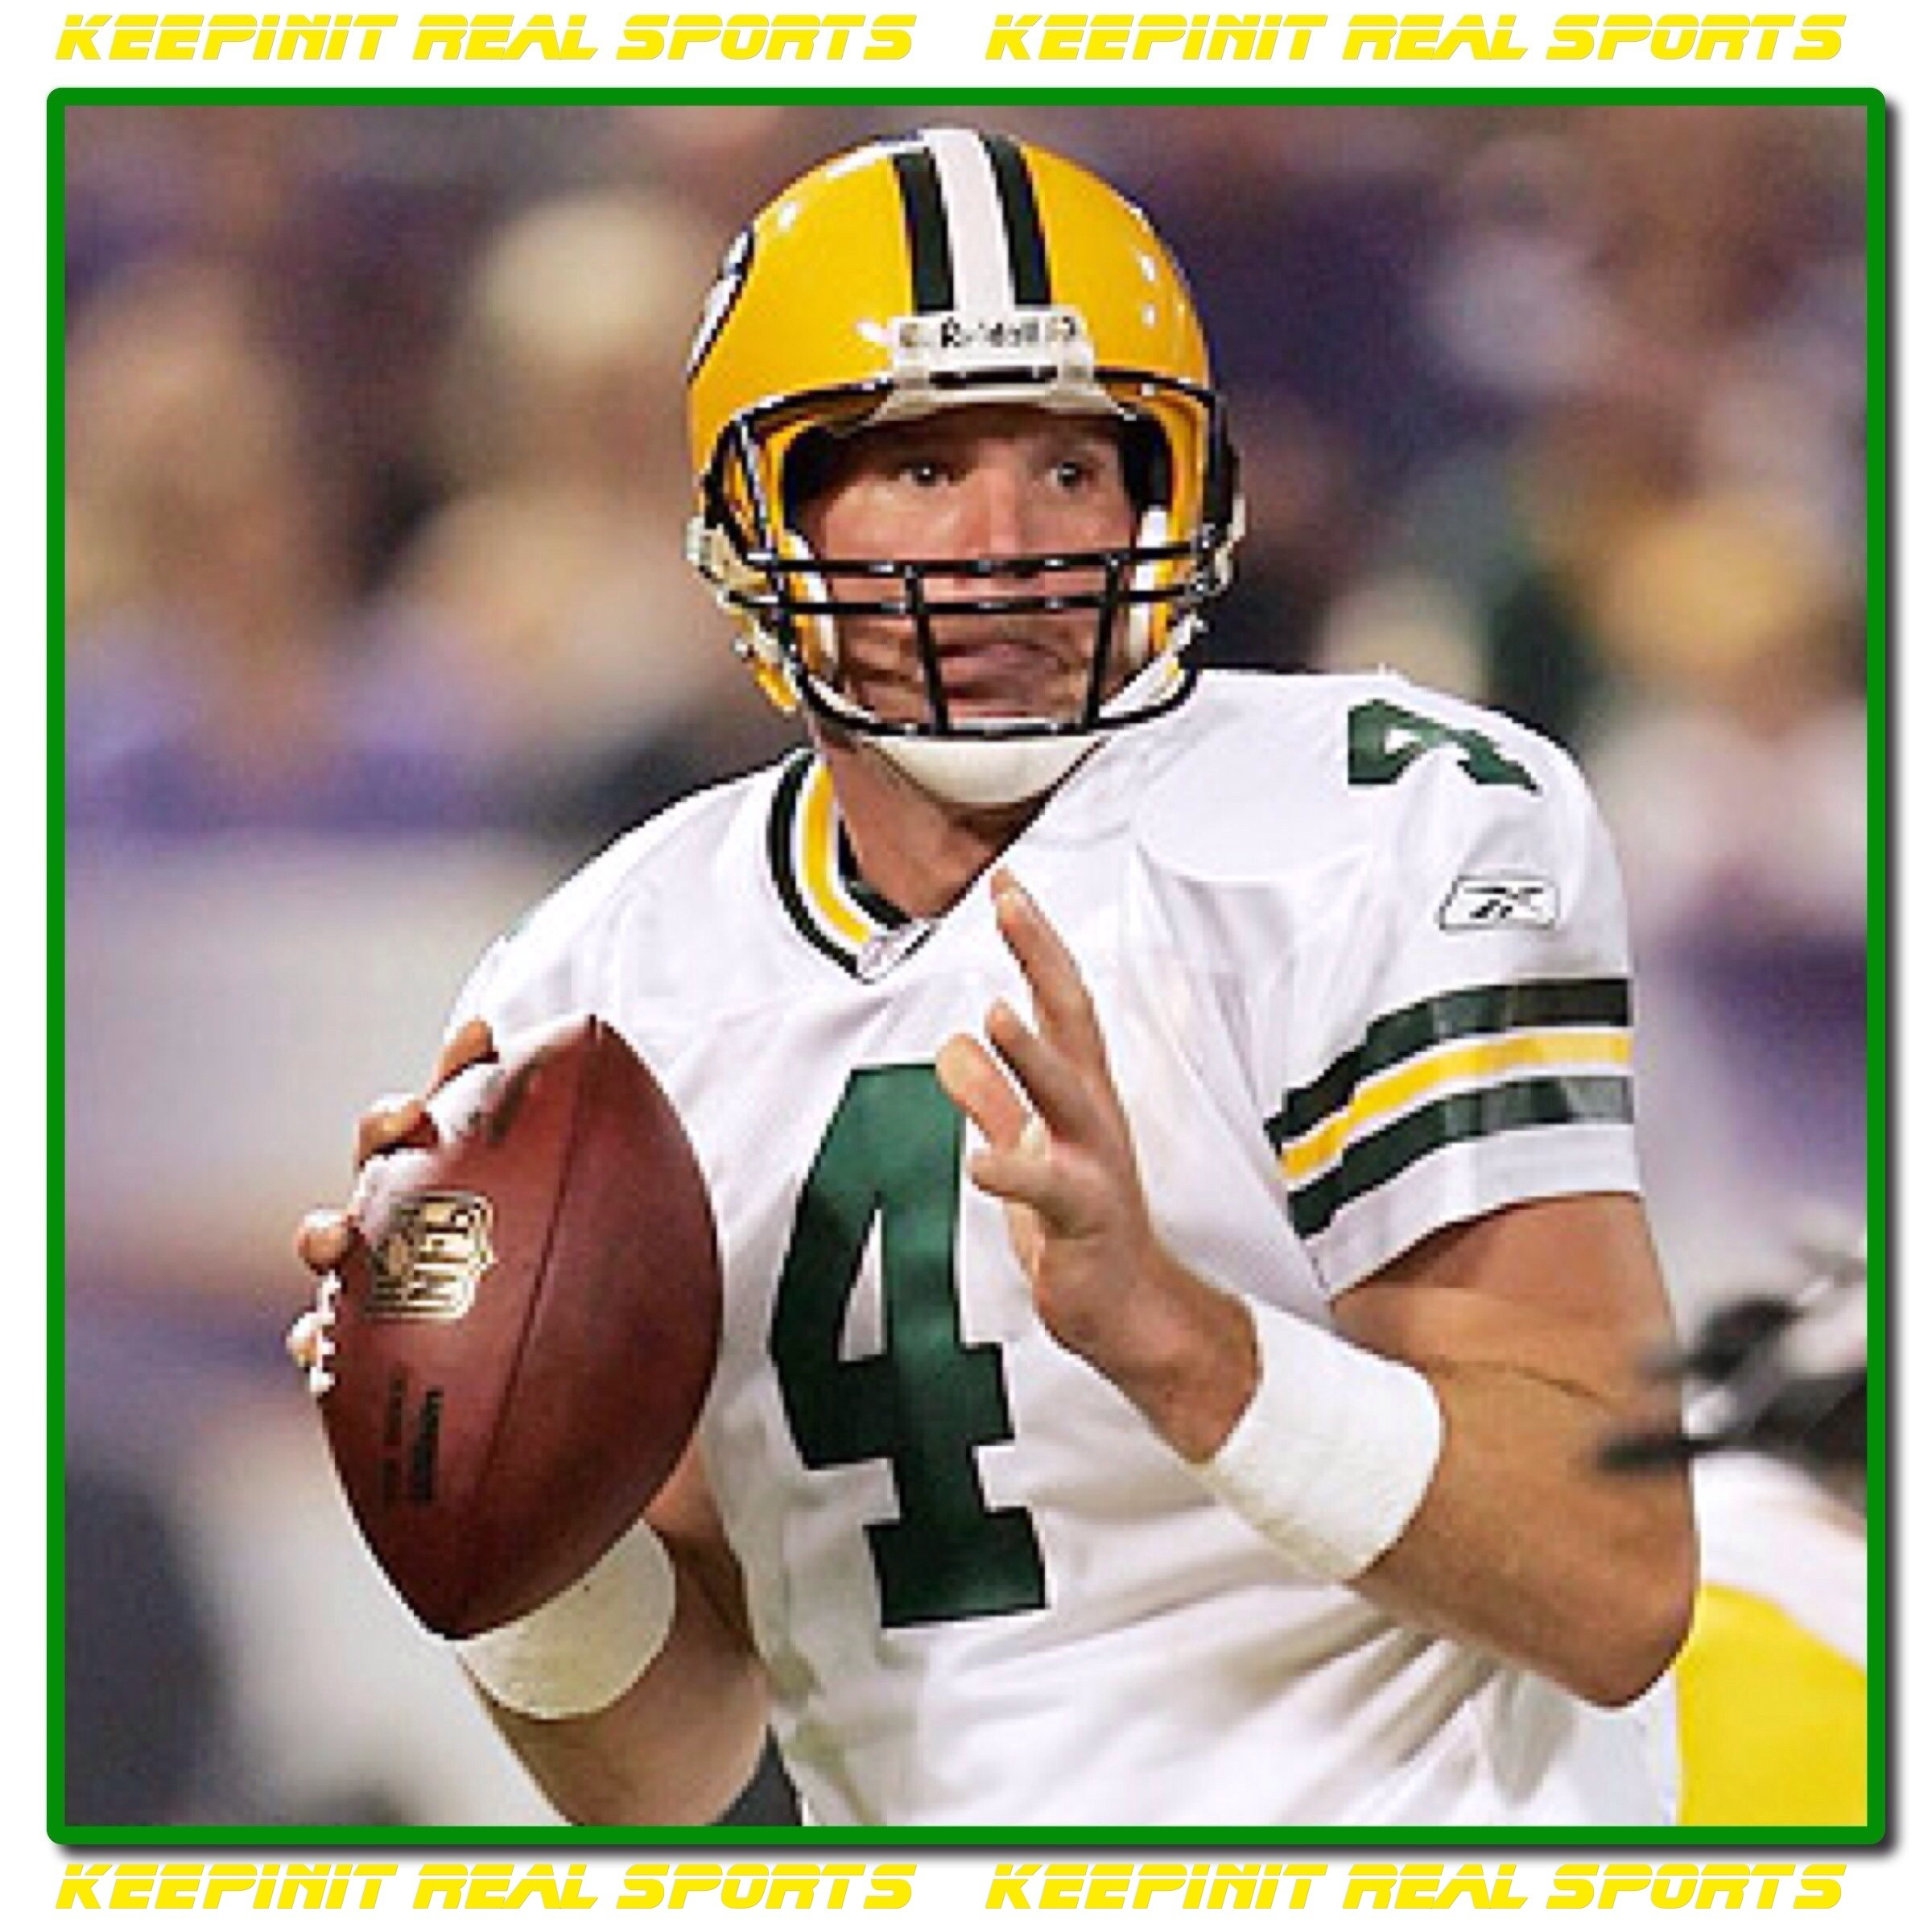 Brett-Lorenzo-Favre-led-the-Packers-to-a-Super-Bowl-victory-during-his-reign-with-the-Packers-wallpaper-wp4003676